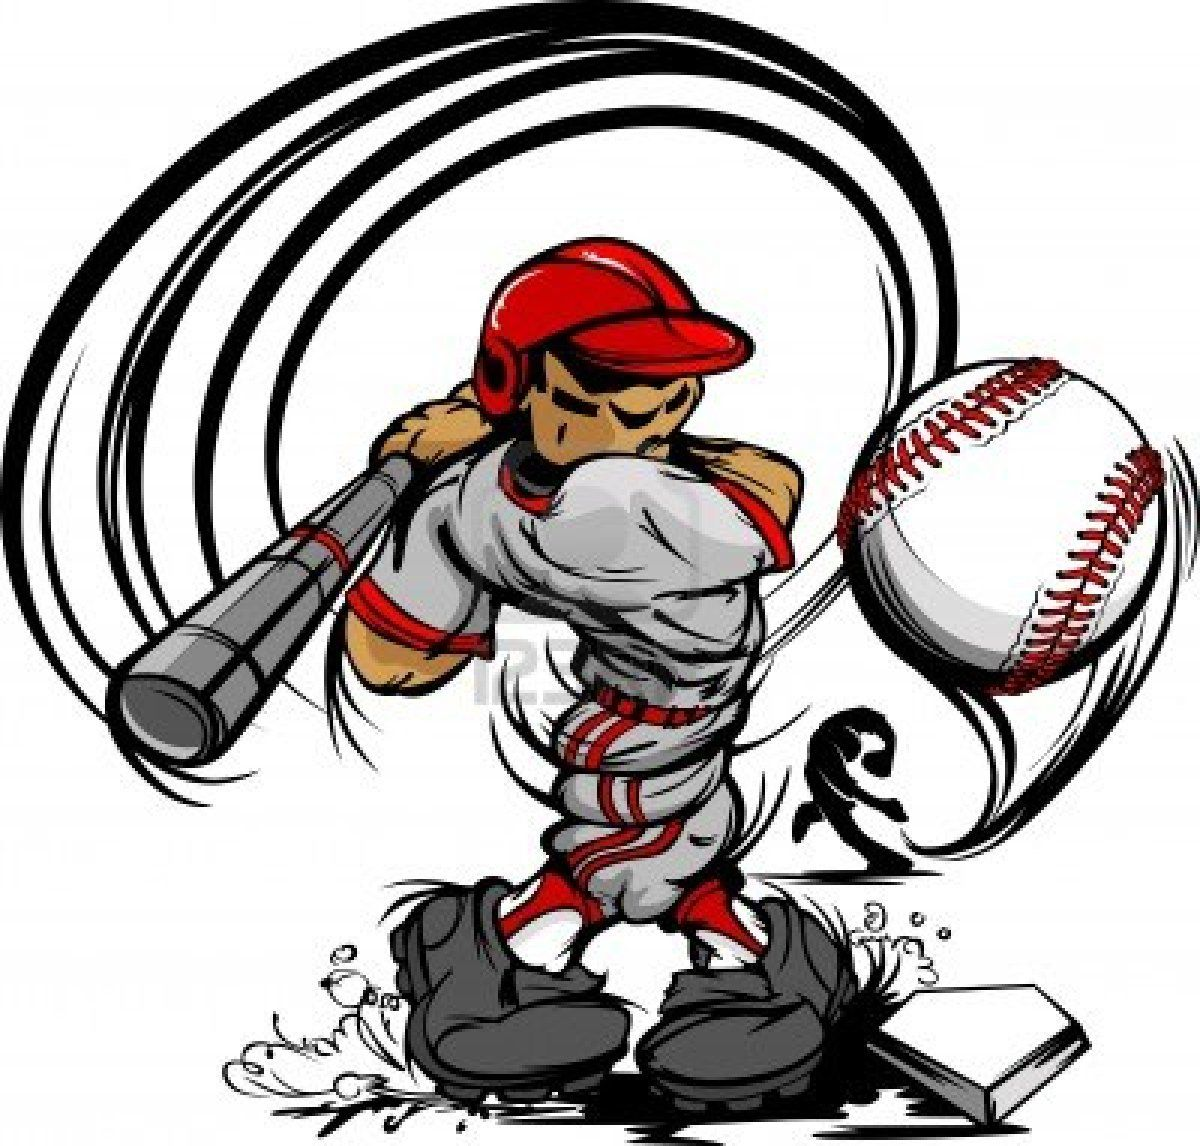 Baseball Cartoon Player With Bat And Ball Vector Illustration Cartoon Styles Cartoon Caricature